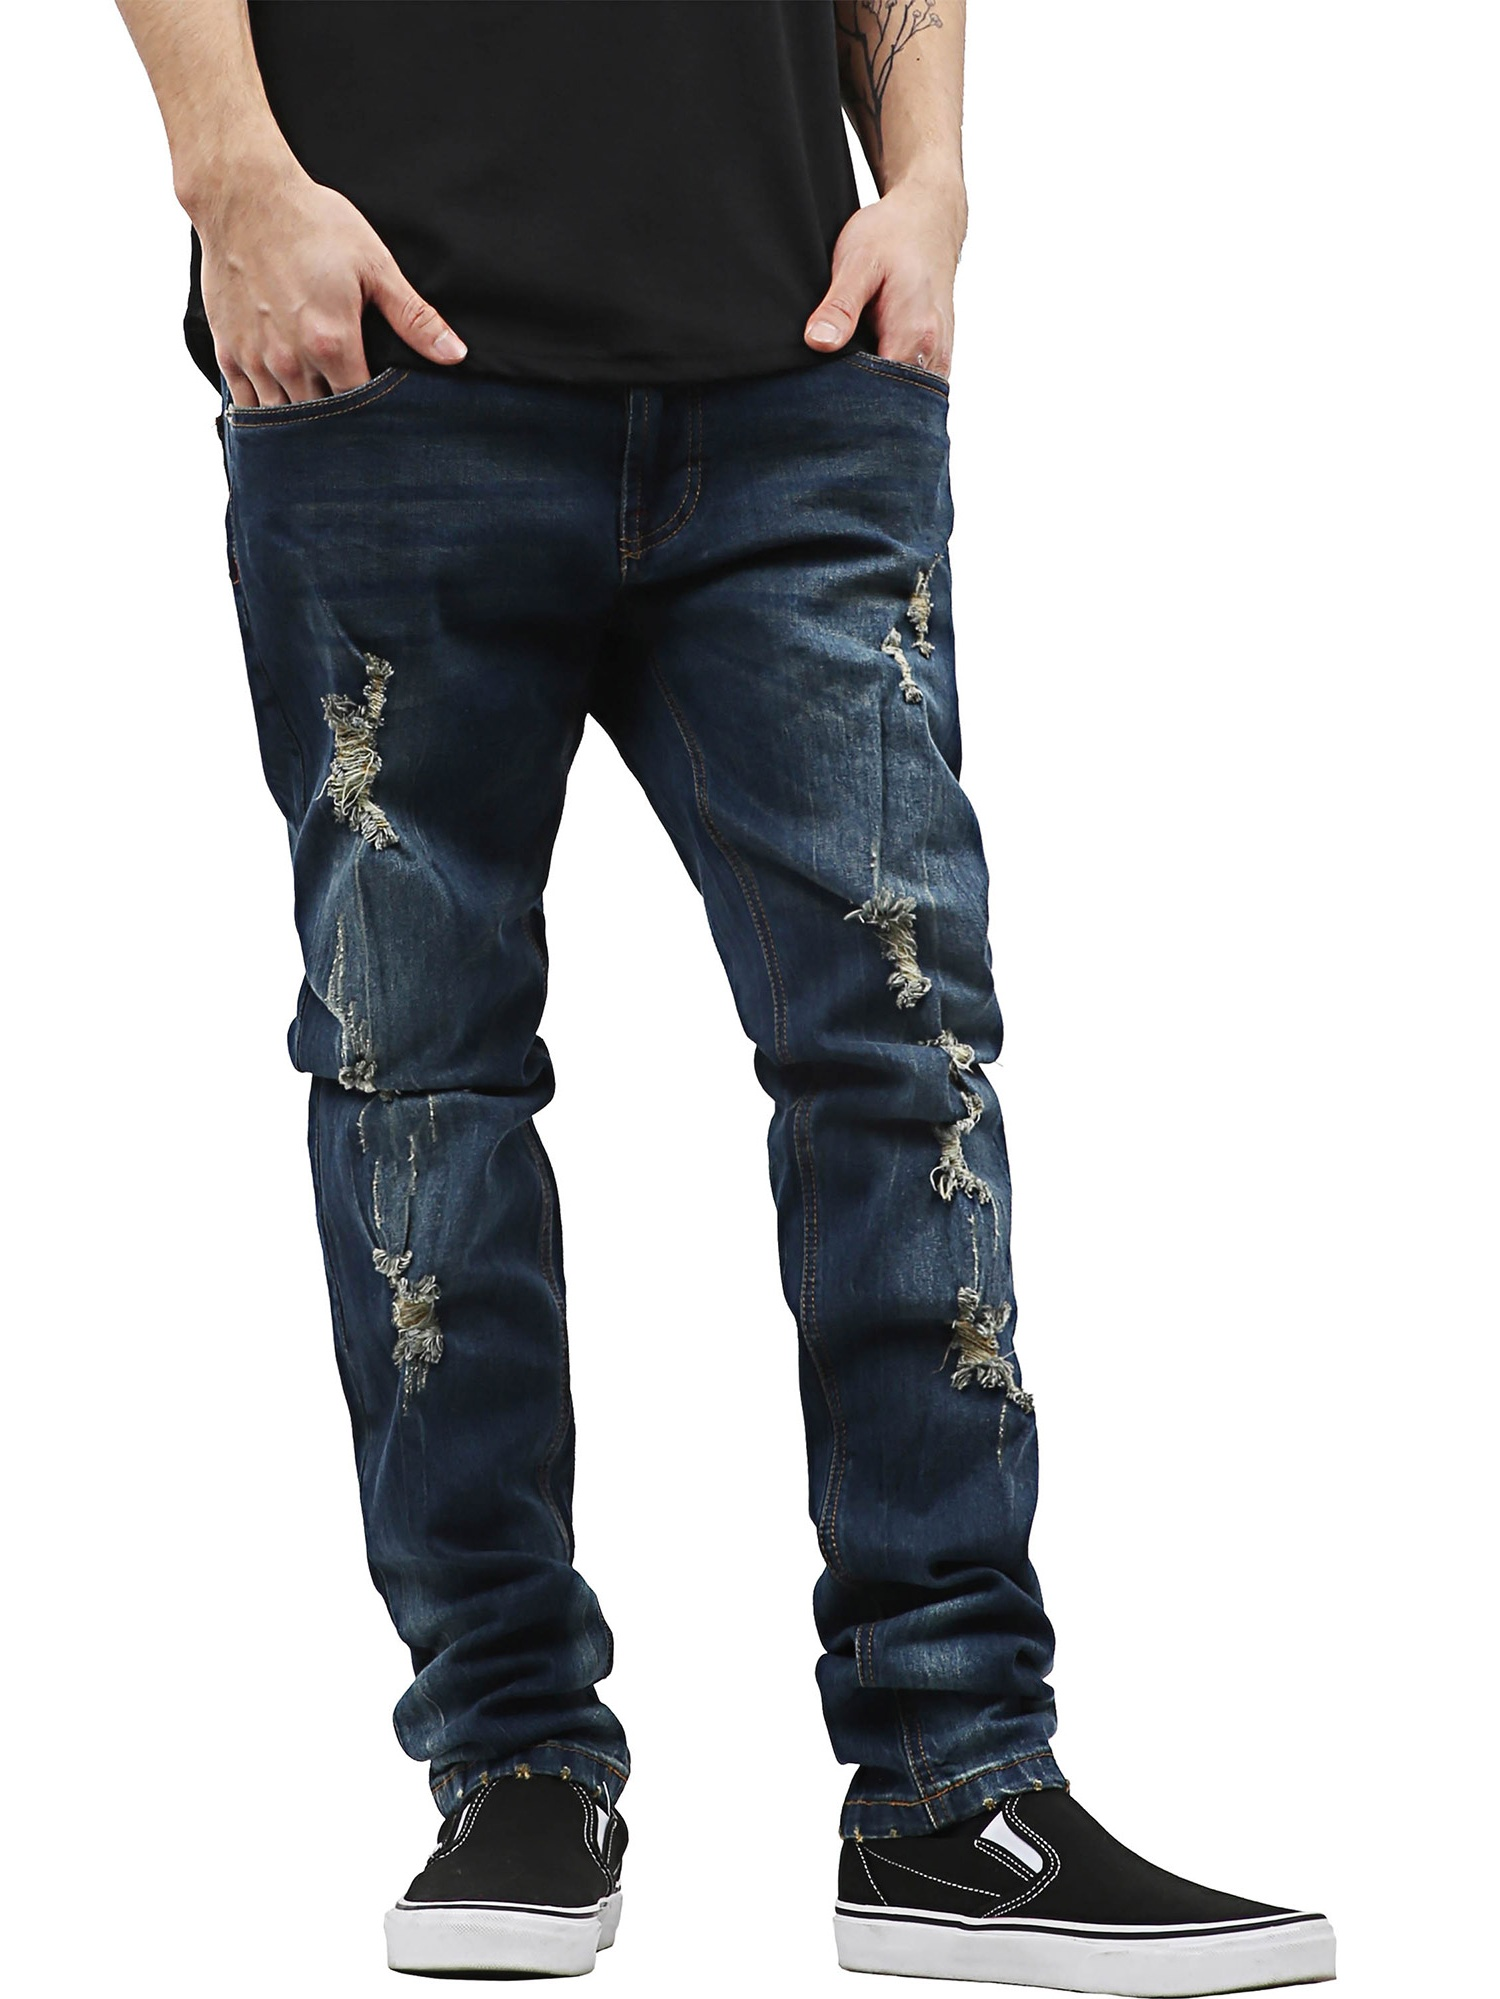 dcd28e35d59 Hat and Beyond - PI Mens Skinny Fit Stretch Jeans Distressed Ripped ...